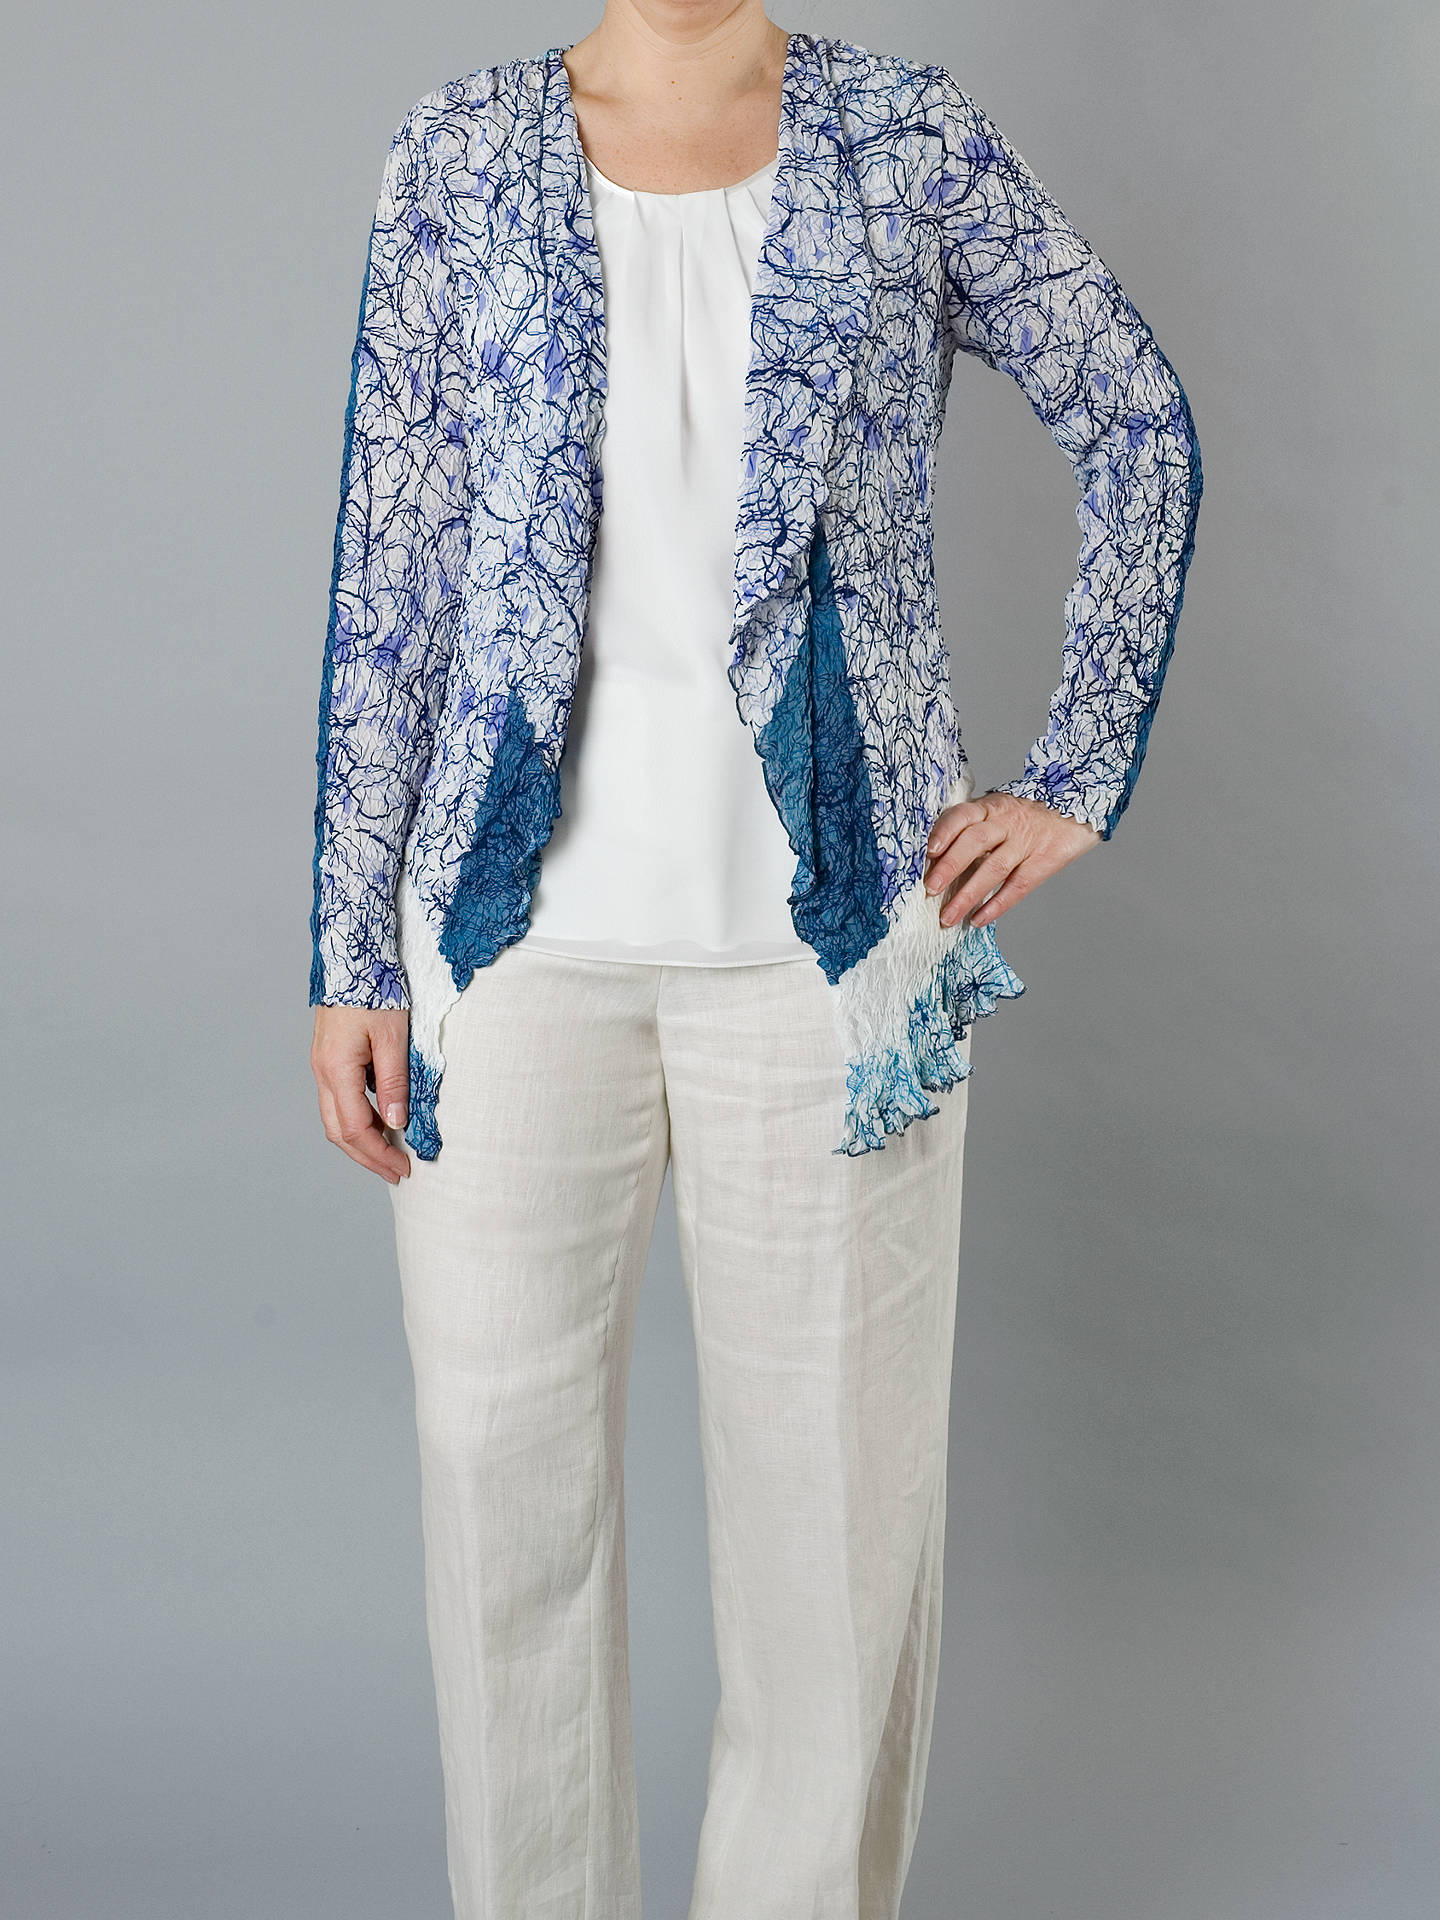 BuyChesca Scribble Print Lace Shrug Cardigan, Ivory/blue, 20-22 Online at johnlewis.com